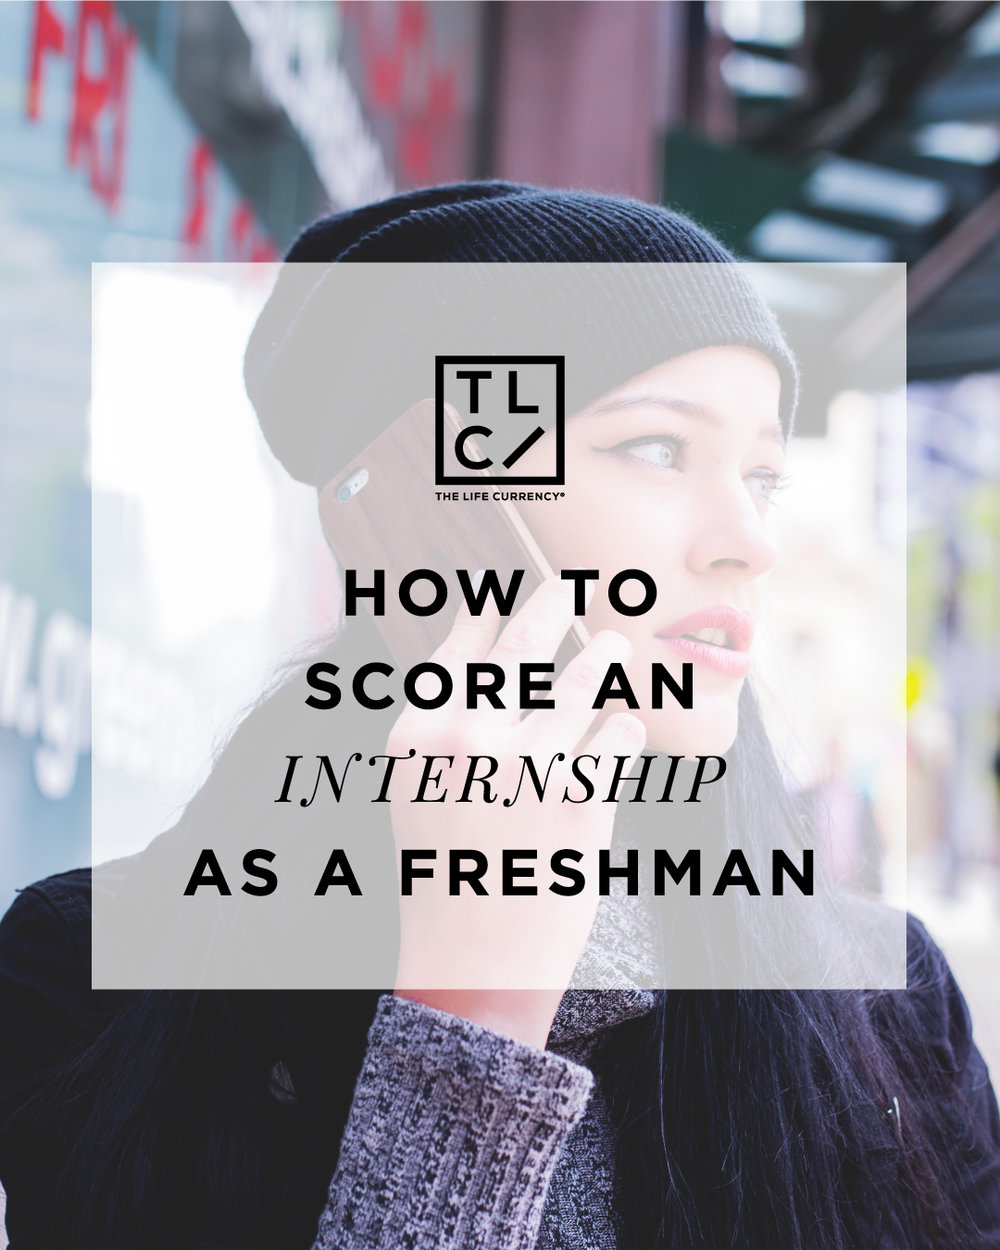 7 Ways to Score an Internship as a Freshman